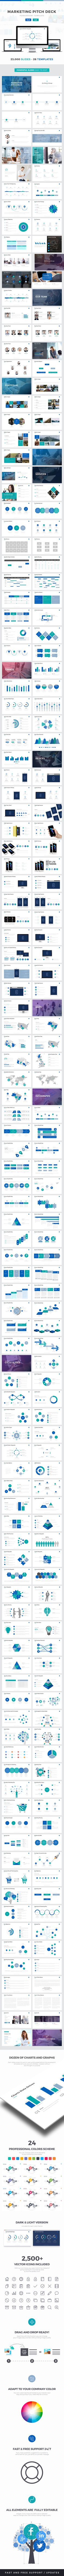 Marketing Pitch Deck Powerpoint Template. Download here: http://graphicriver.net/item/marketing-pitch-deck-powerpoint-template/16564260?ref=ksioks